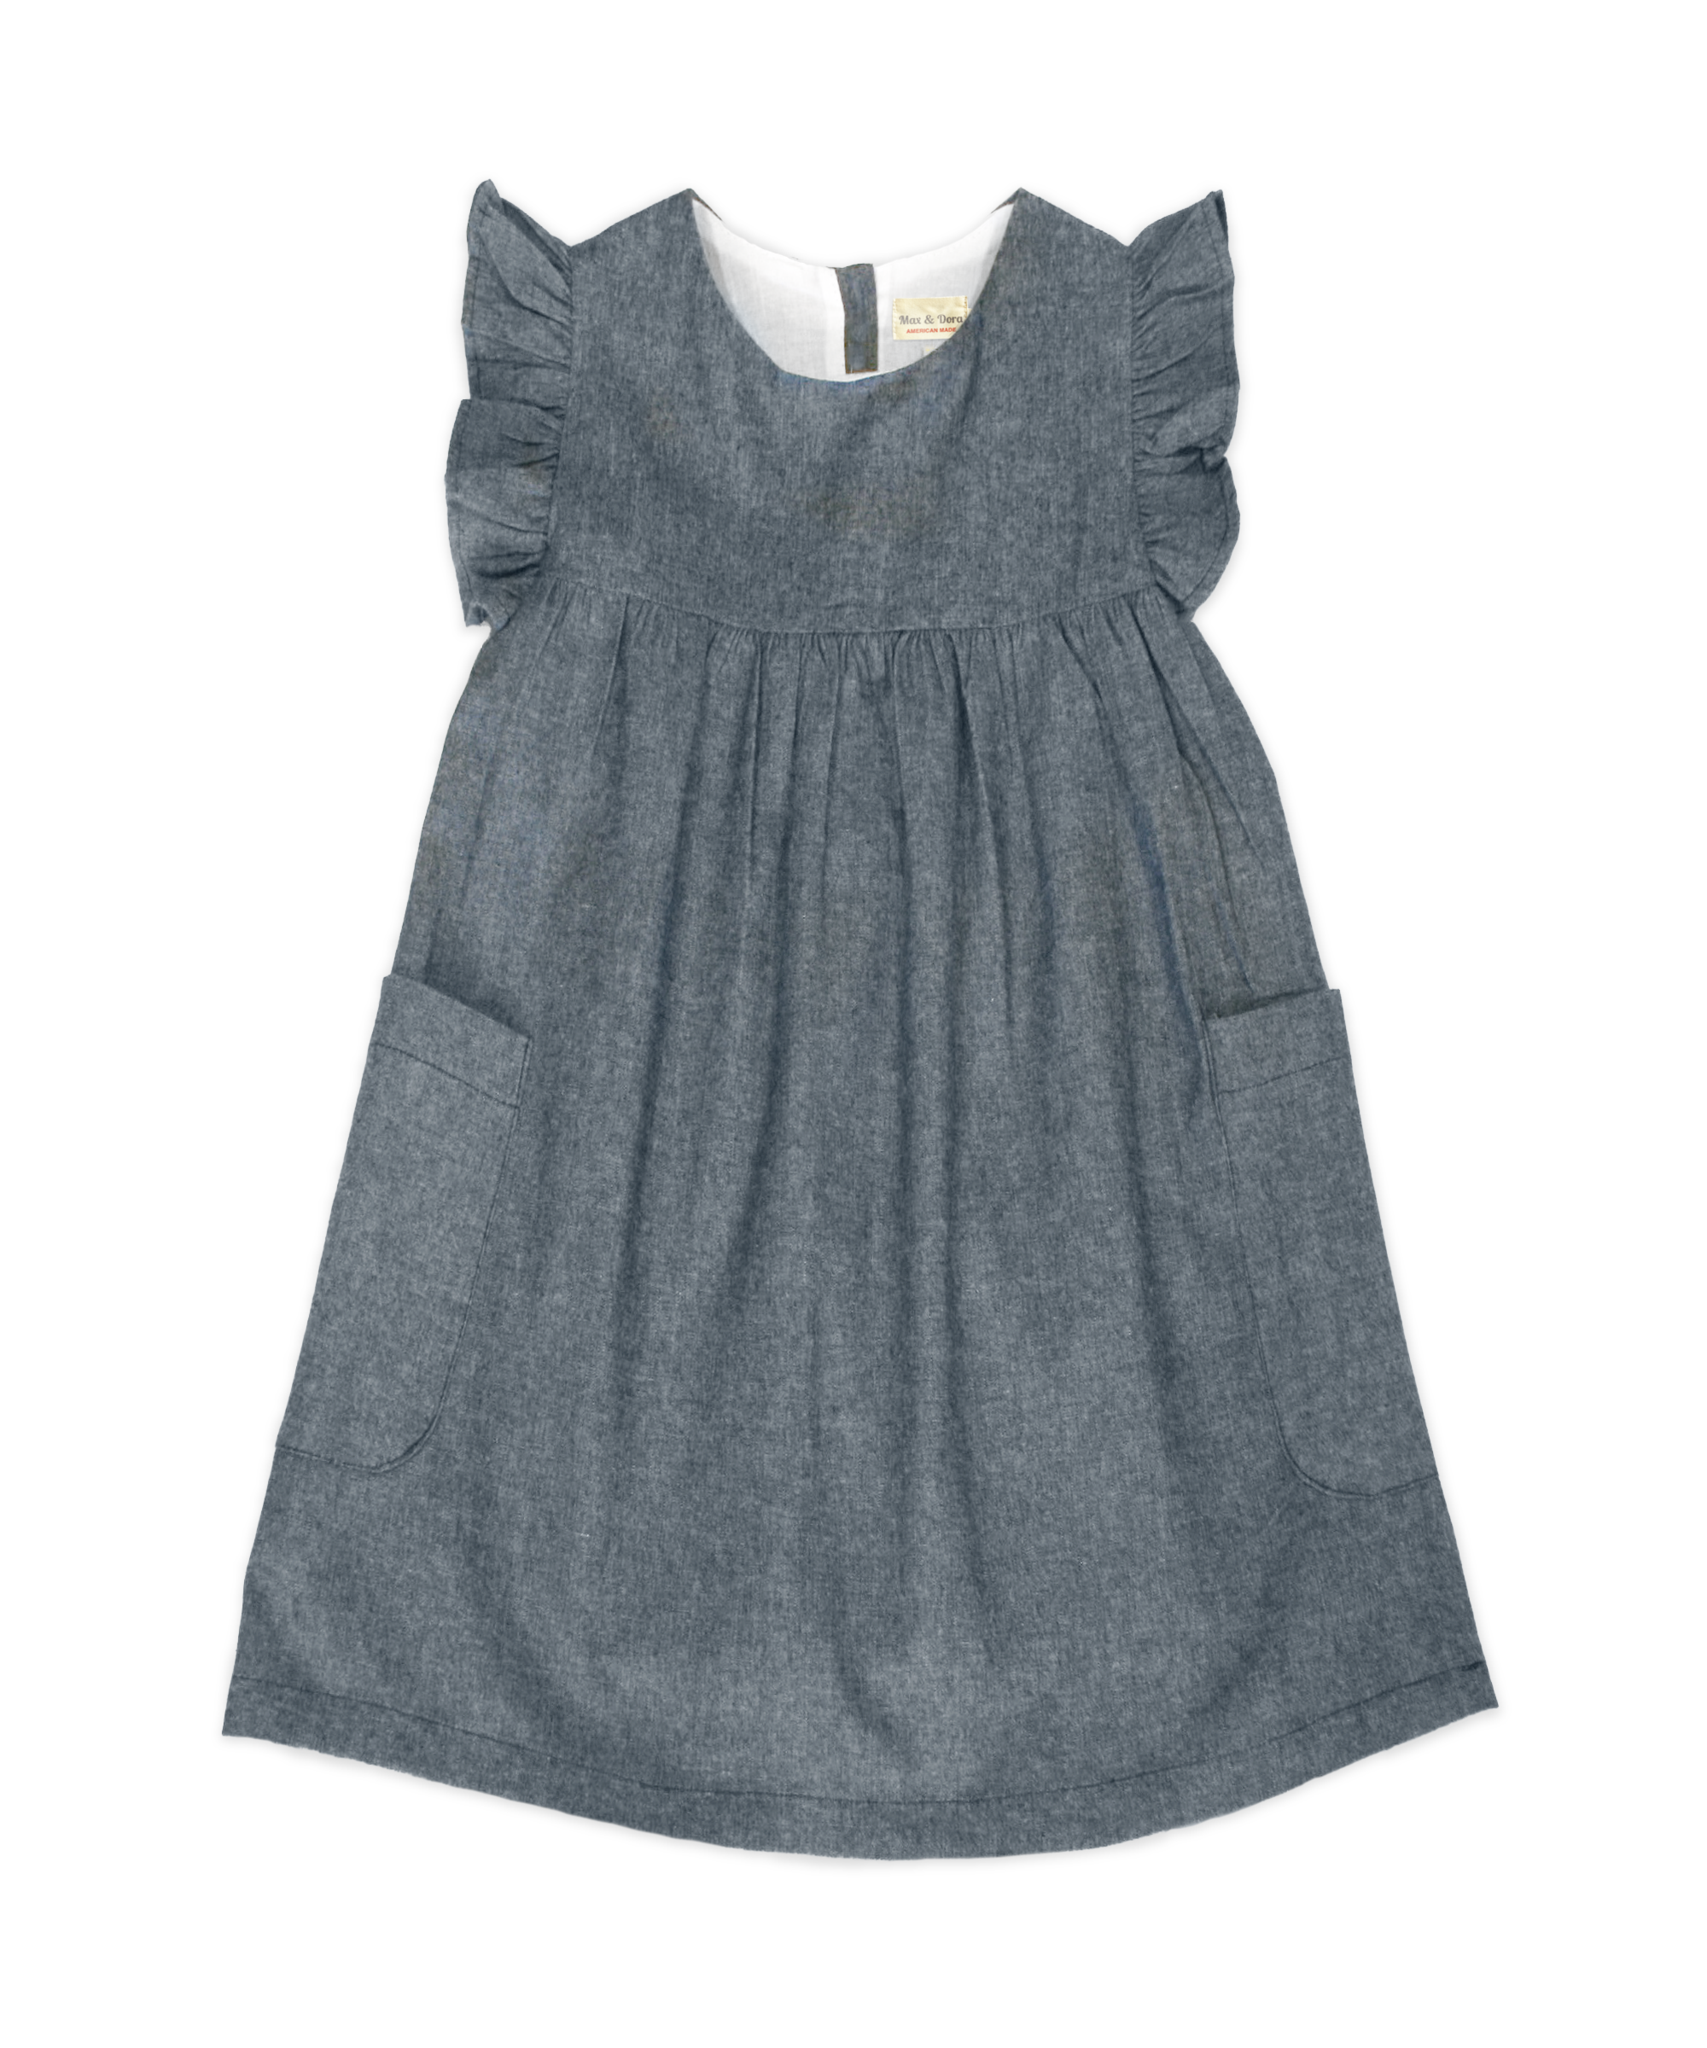 London chambray denim empire waist flutter sleeve dress for Chambray 7 s